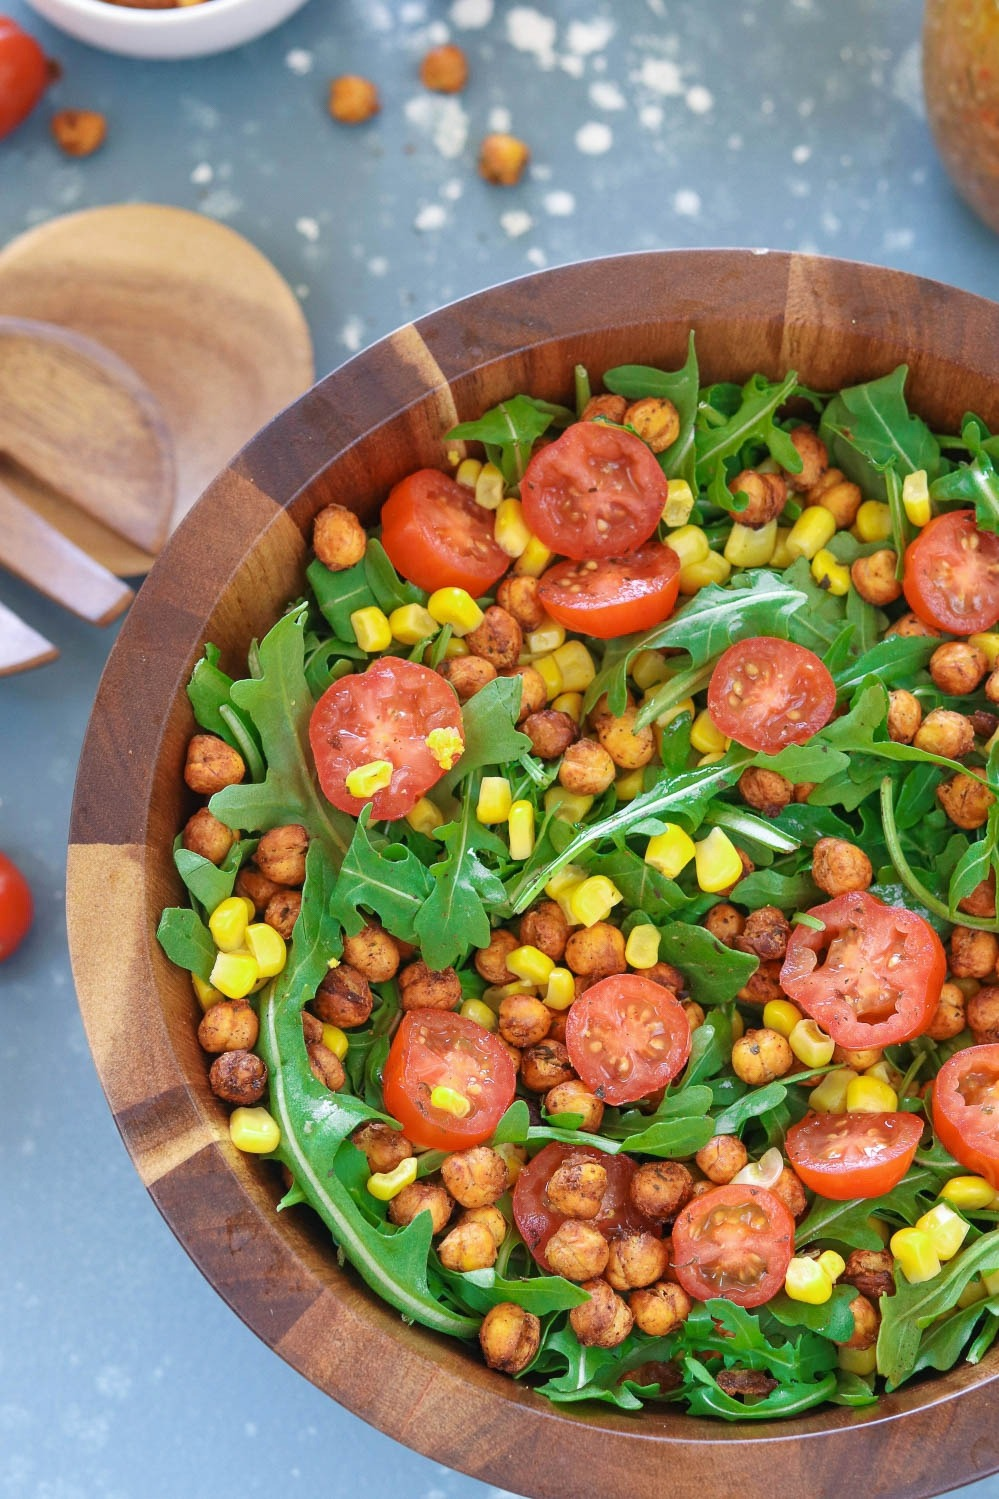 Roasted Chickpea And Arugula Salad | Ruchiskitchen.com